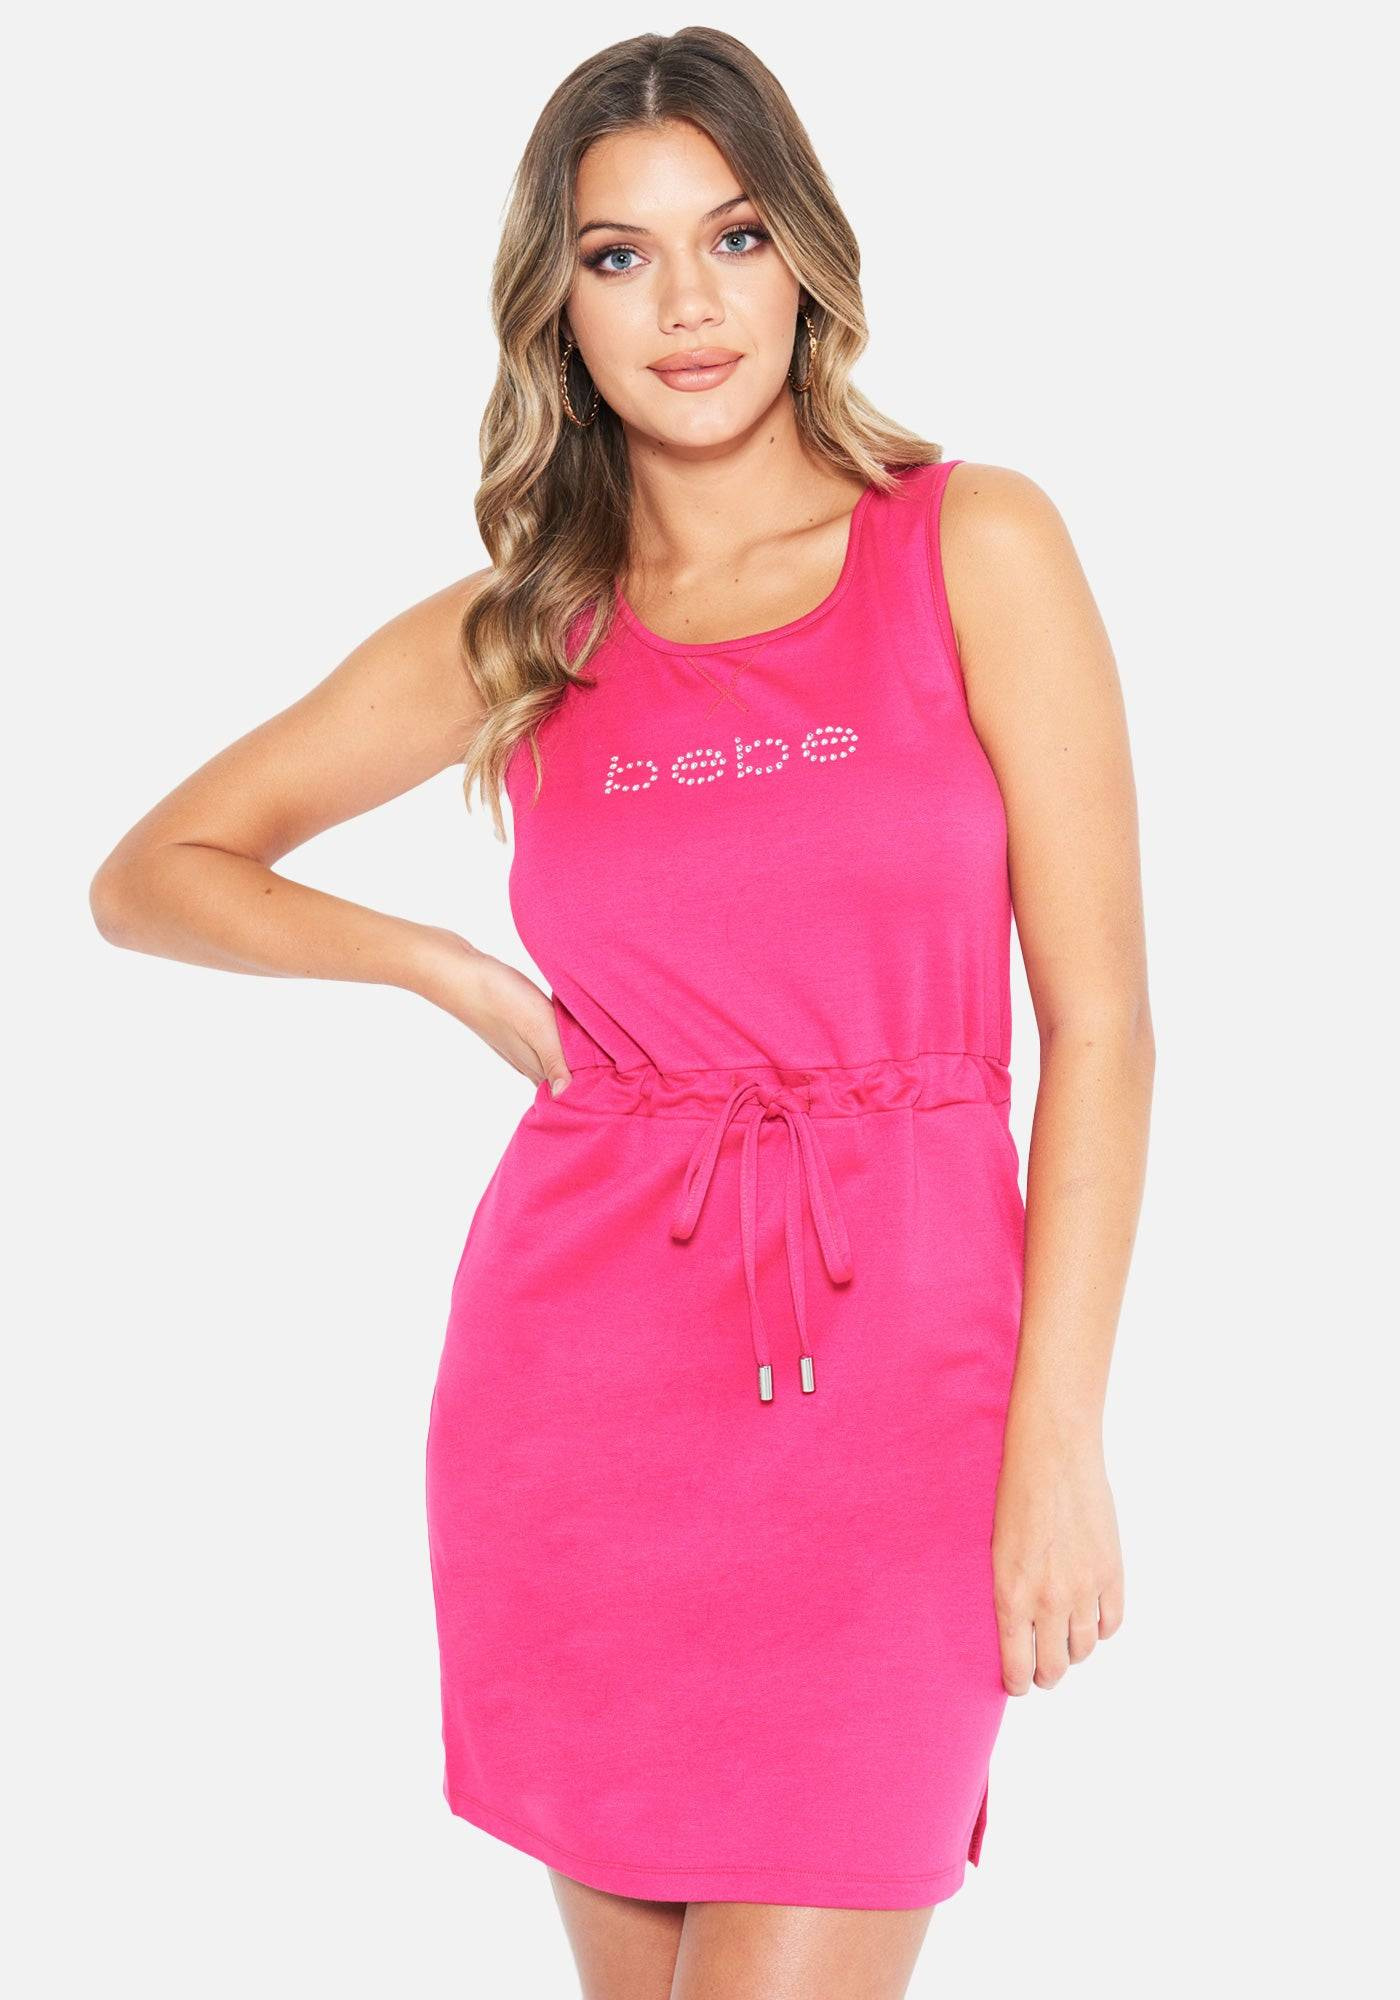 Bebe Women's French Terry Tank Dress, Size XL in Beet Root Spandex